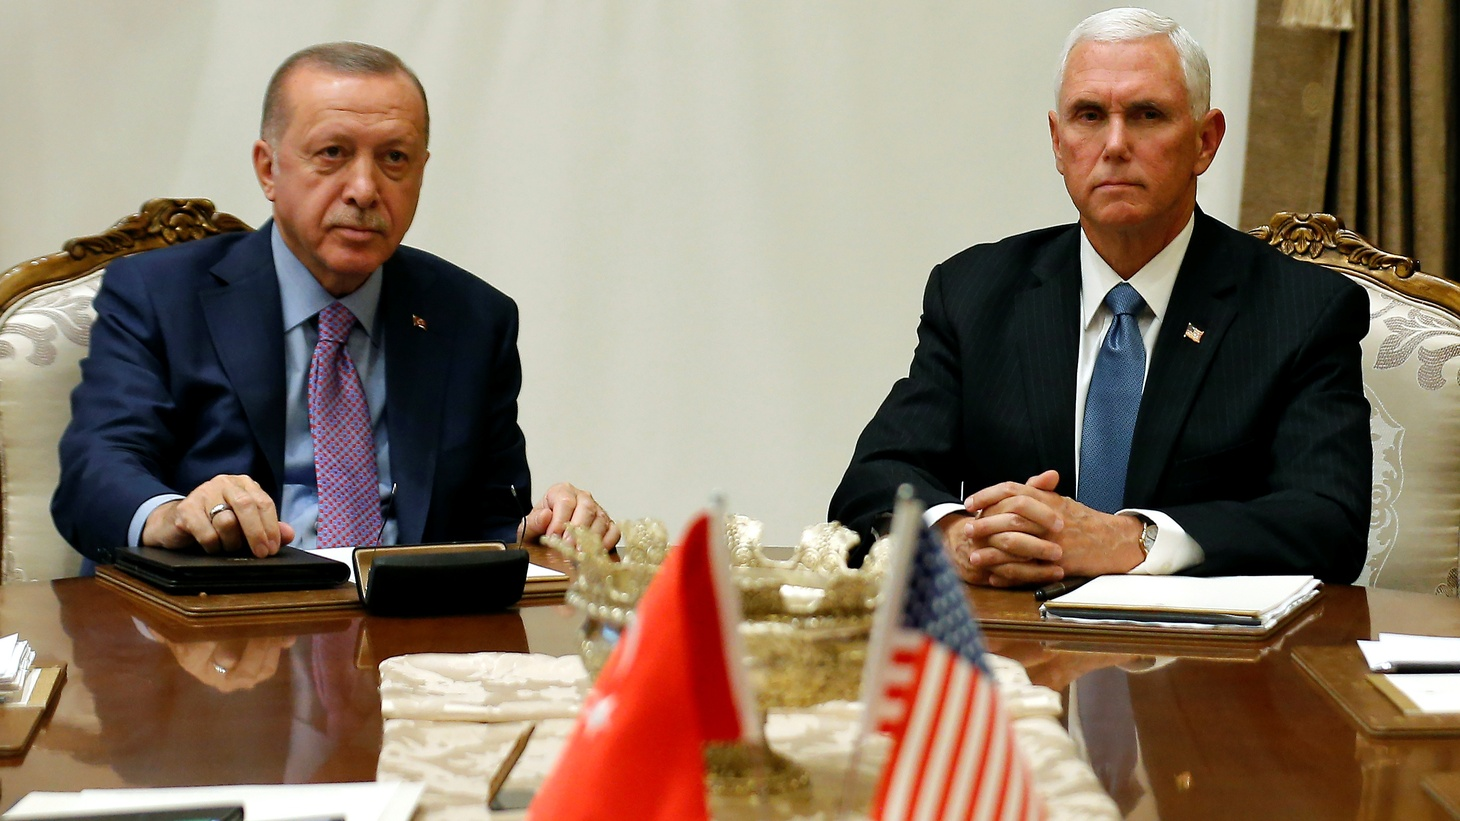 U.S. Vice President Mike Pence meets with Turkish President Tayyip Erdogan at the Presidential Palace in Ankara, Turkey, October 17, 2019.